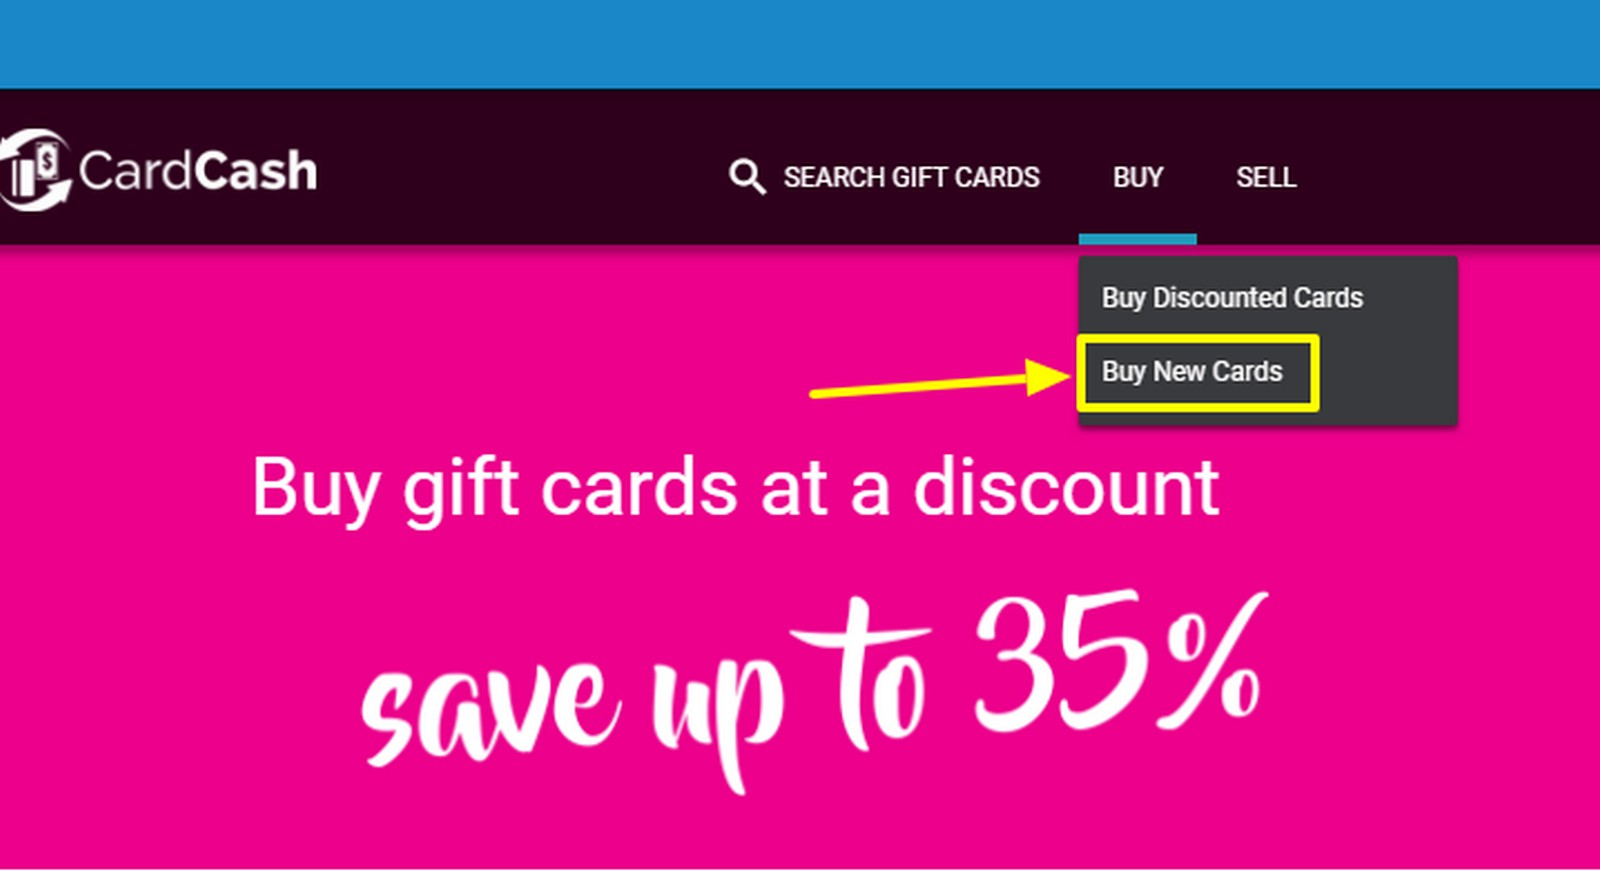 CardCash Now Sells New Gift Cards